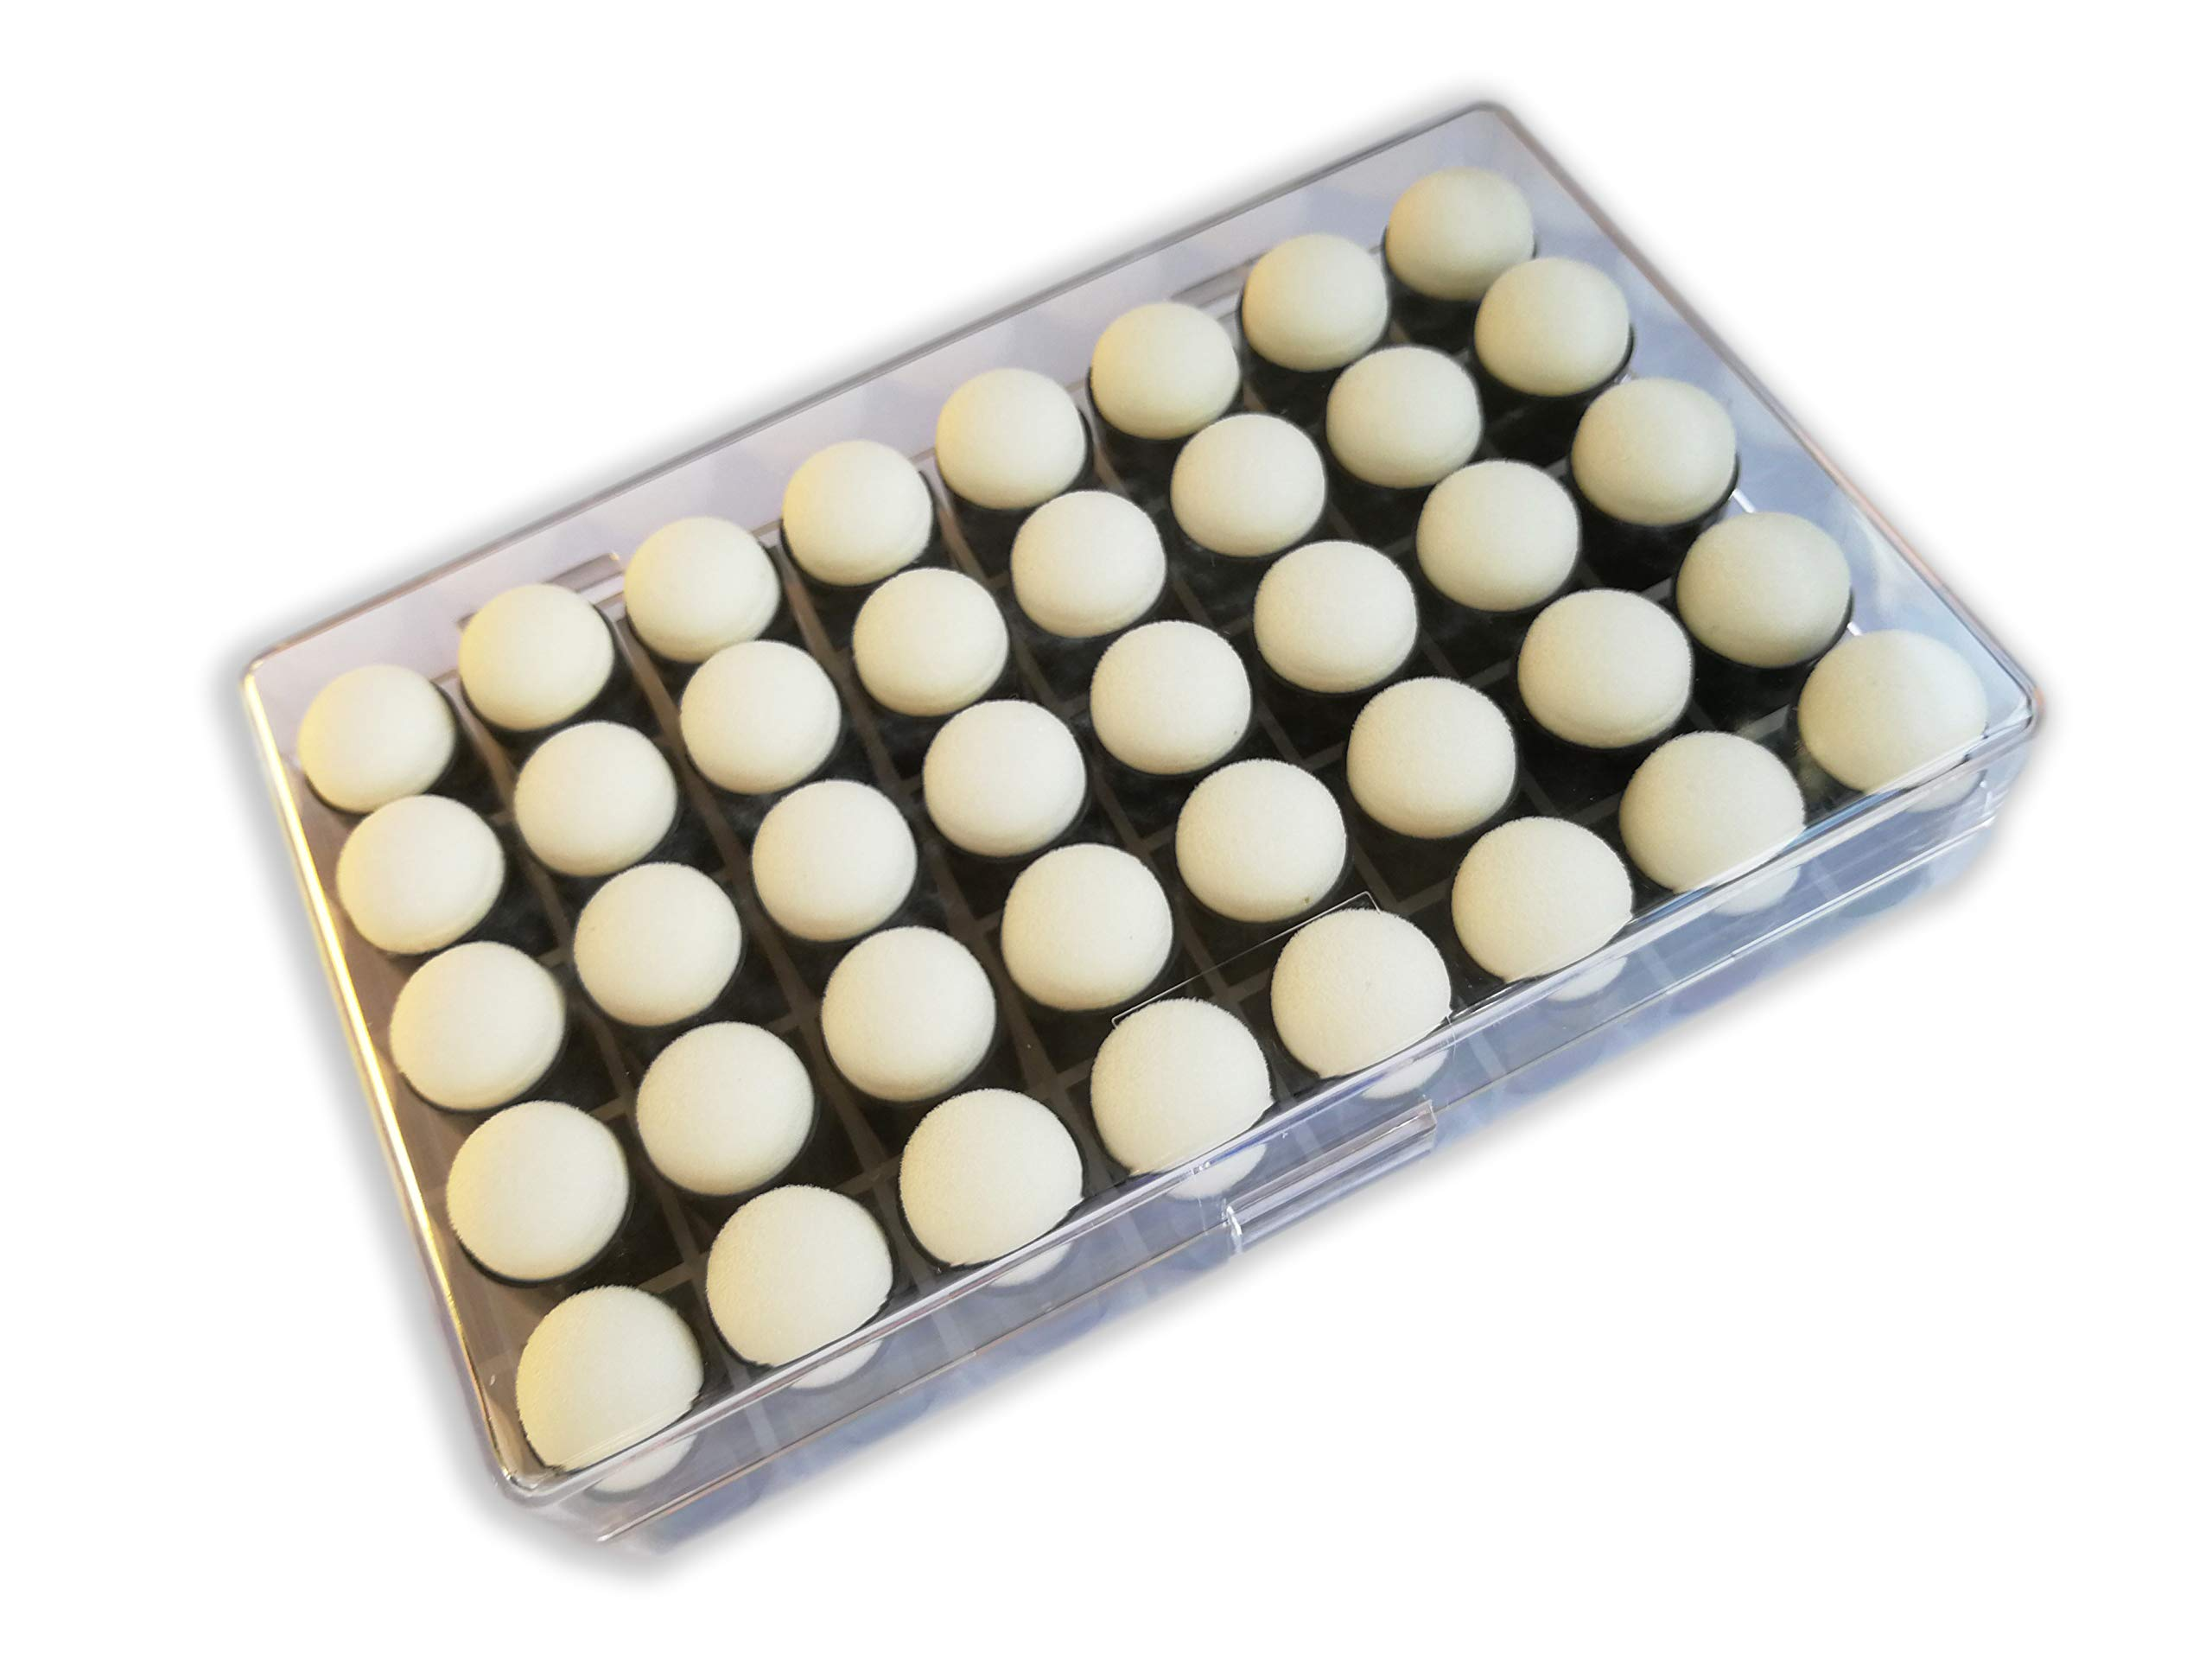 Actopus 40pcs Finger Sponge Daubers with Box for Drawing Craft Painting Supplies by Actopus